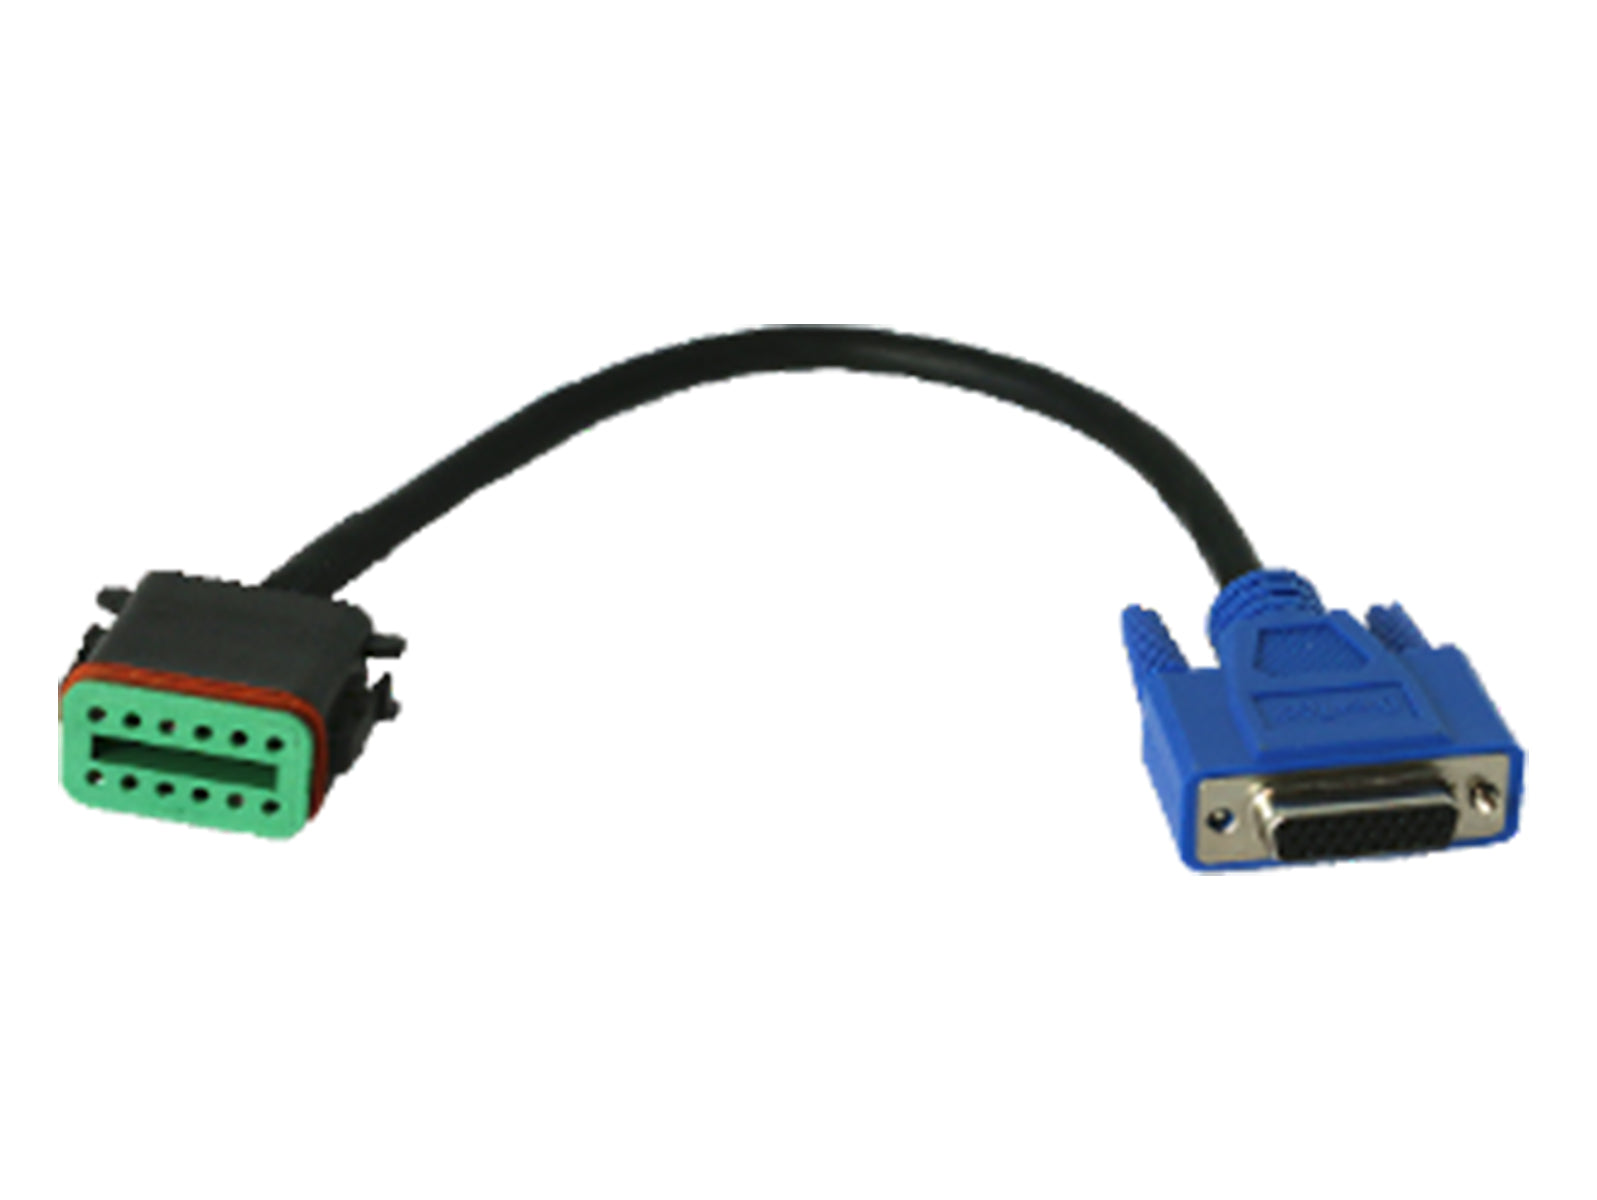 Drew Tech Komatsu 12 Pin Cable for DrewLinQ